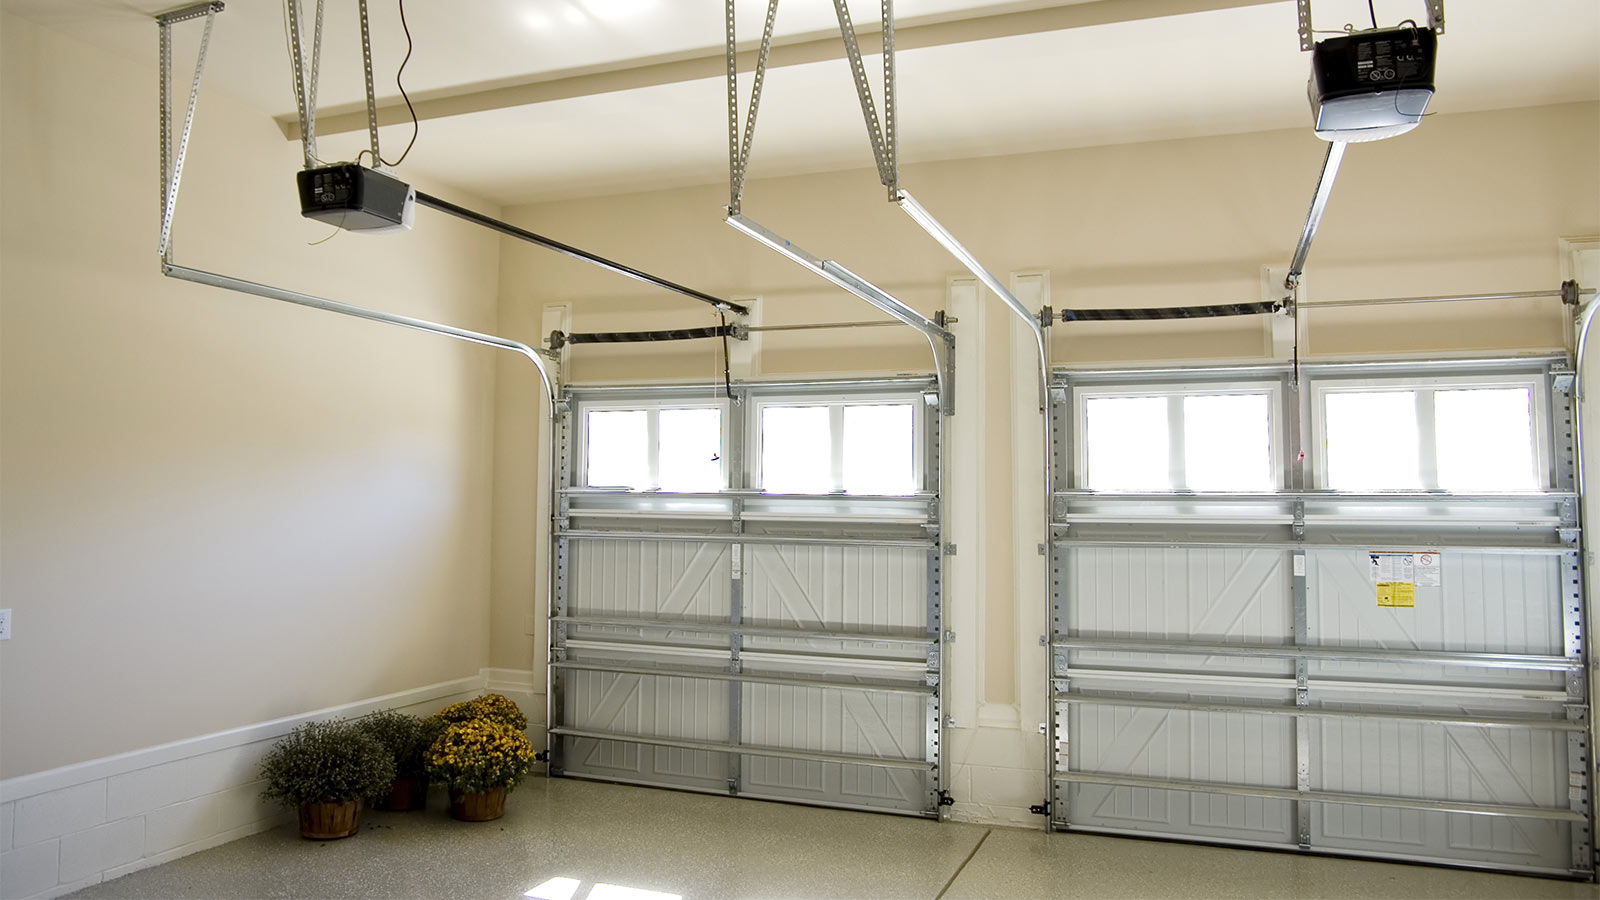 Sectional Garage Doors from High Speed Roller Shutters Billericay suppliers.